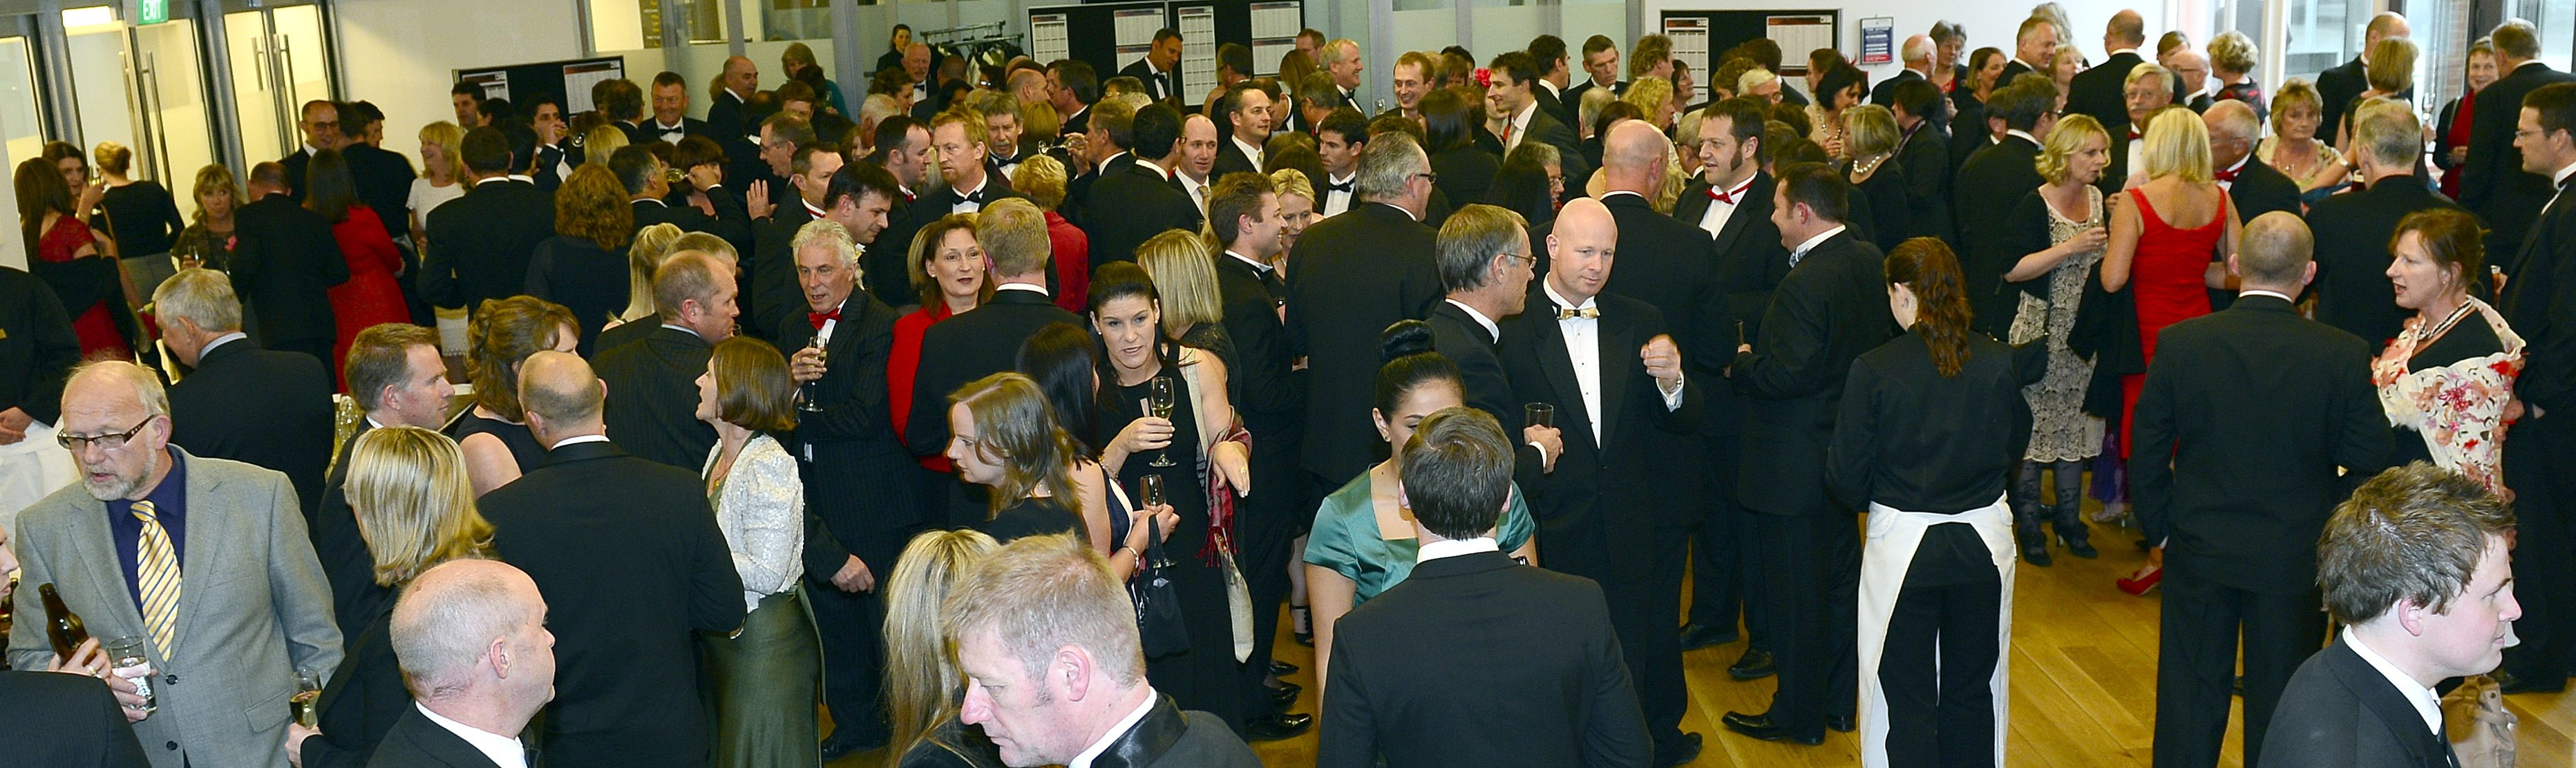 Local business-people enjoying a previous Westpac Otago Business Awards evening.